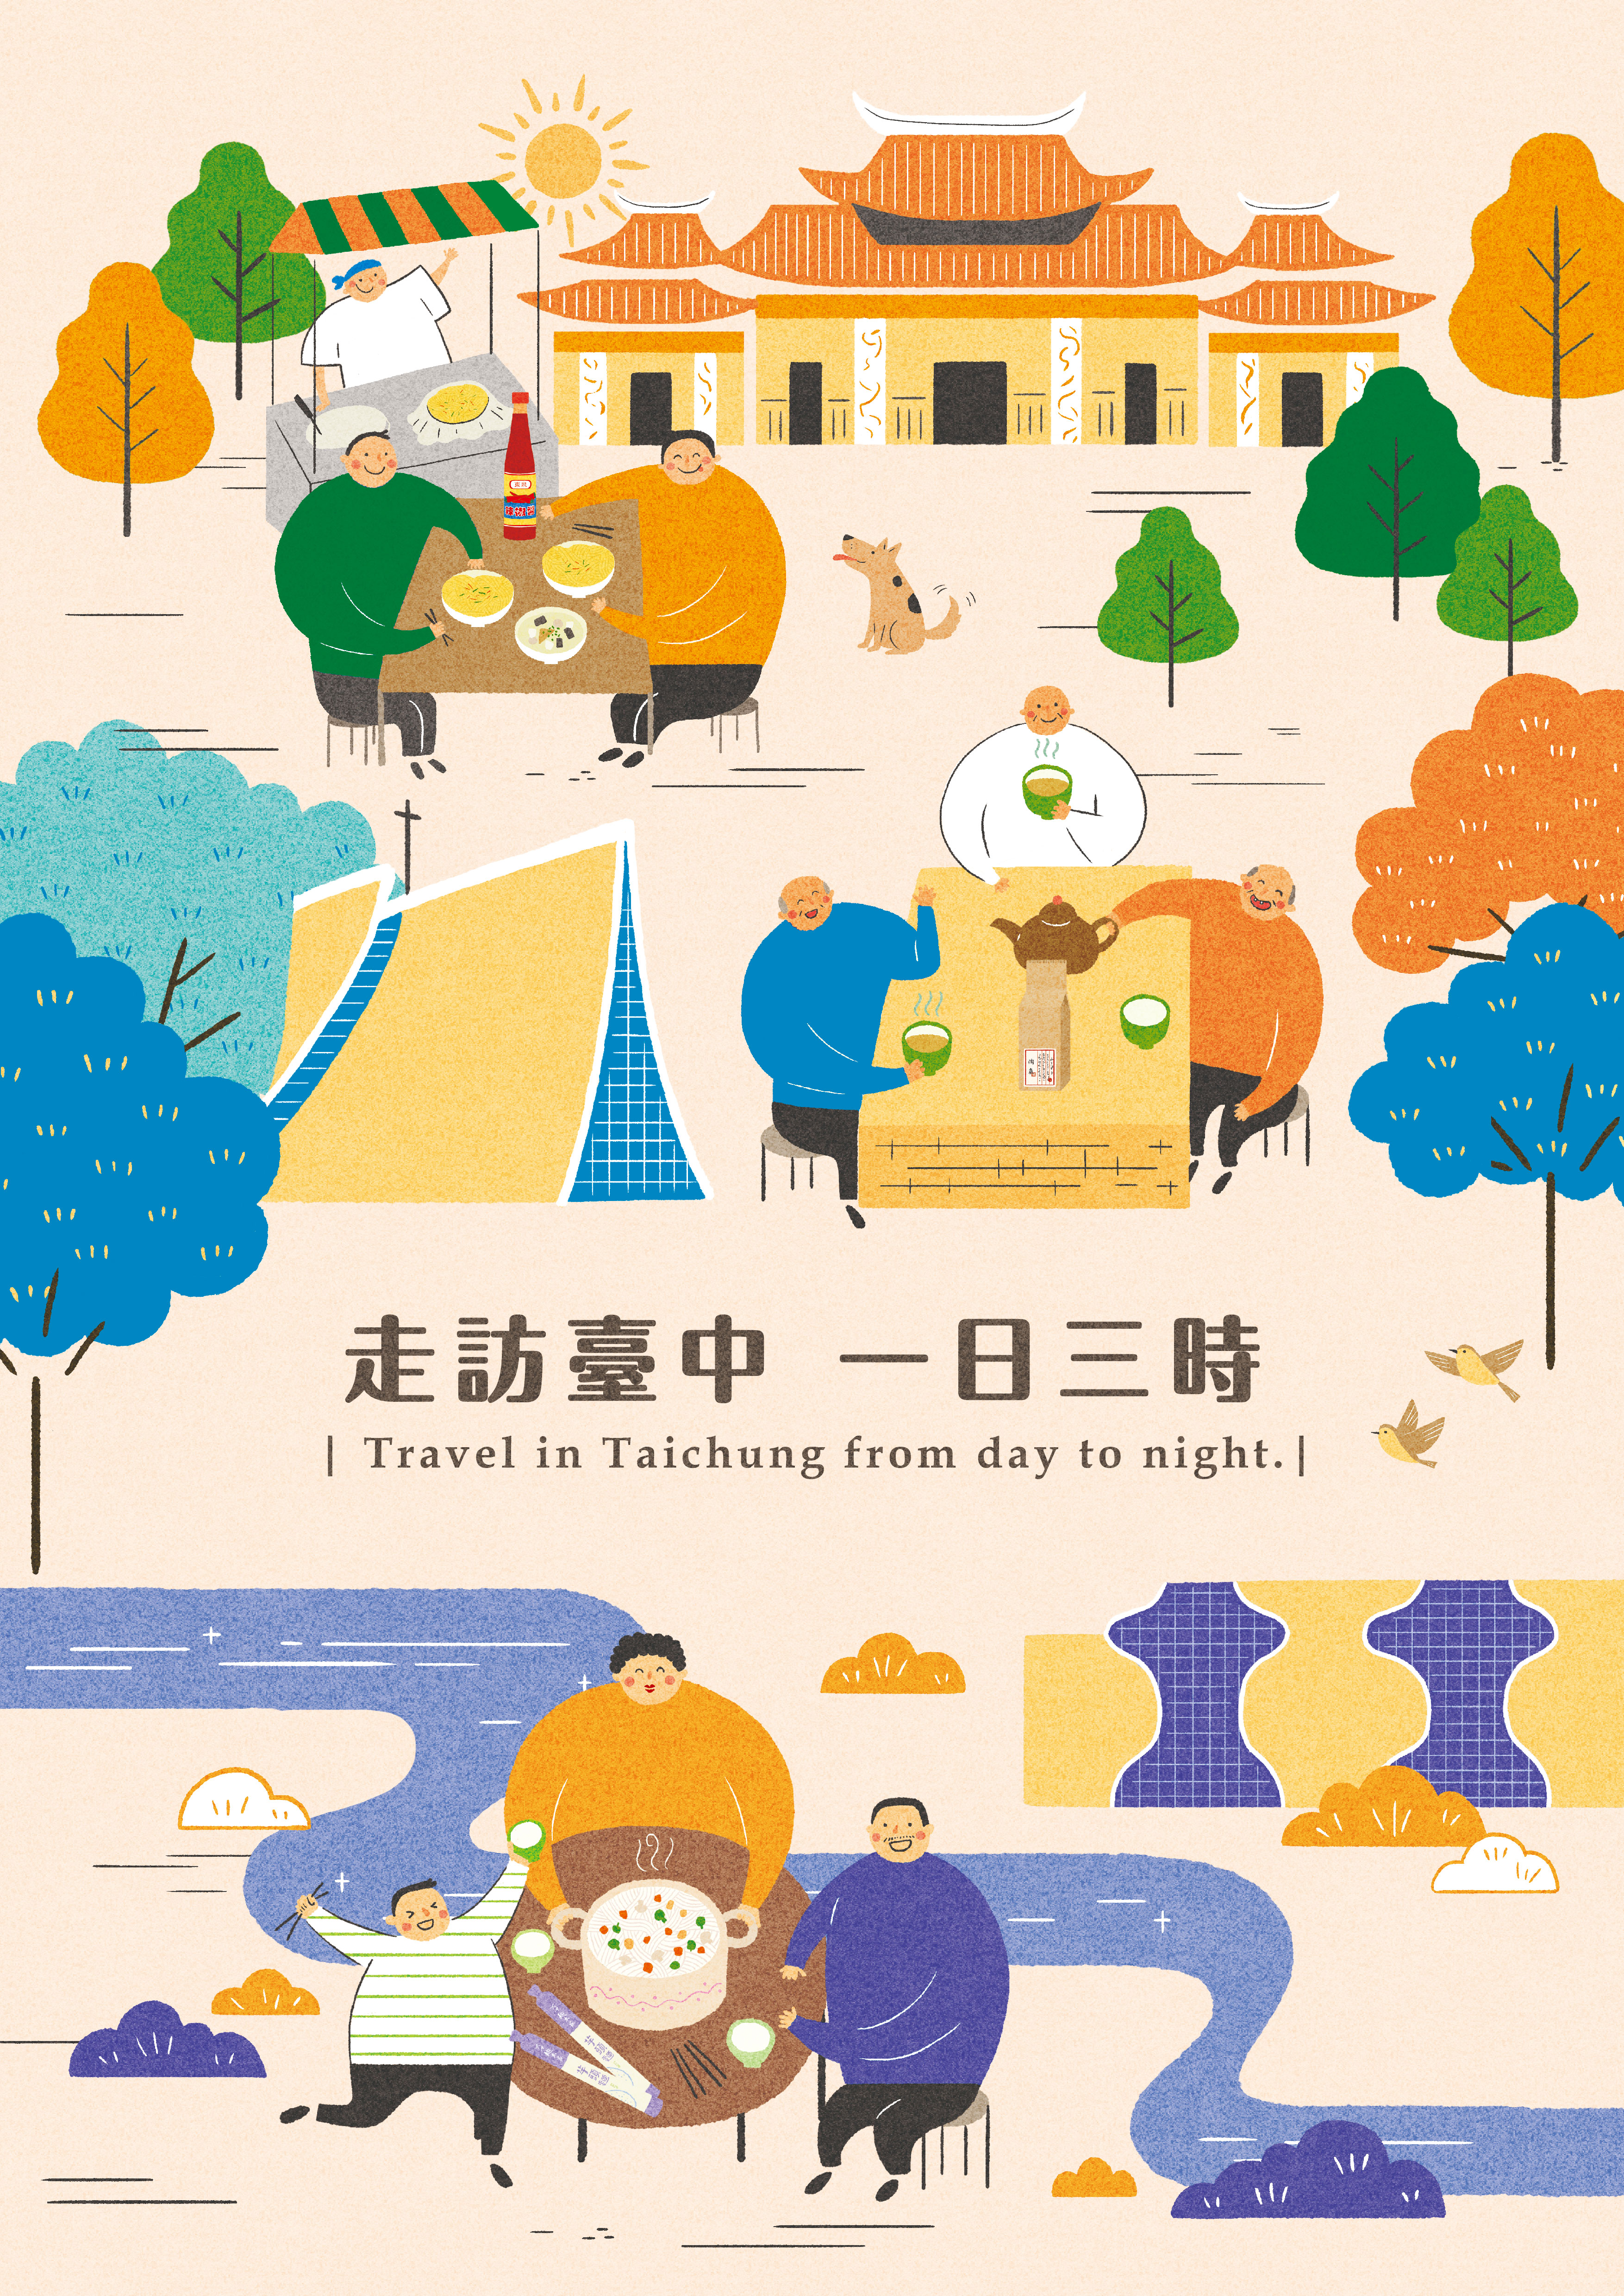 Travel in Taichung from day  to night.